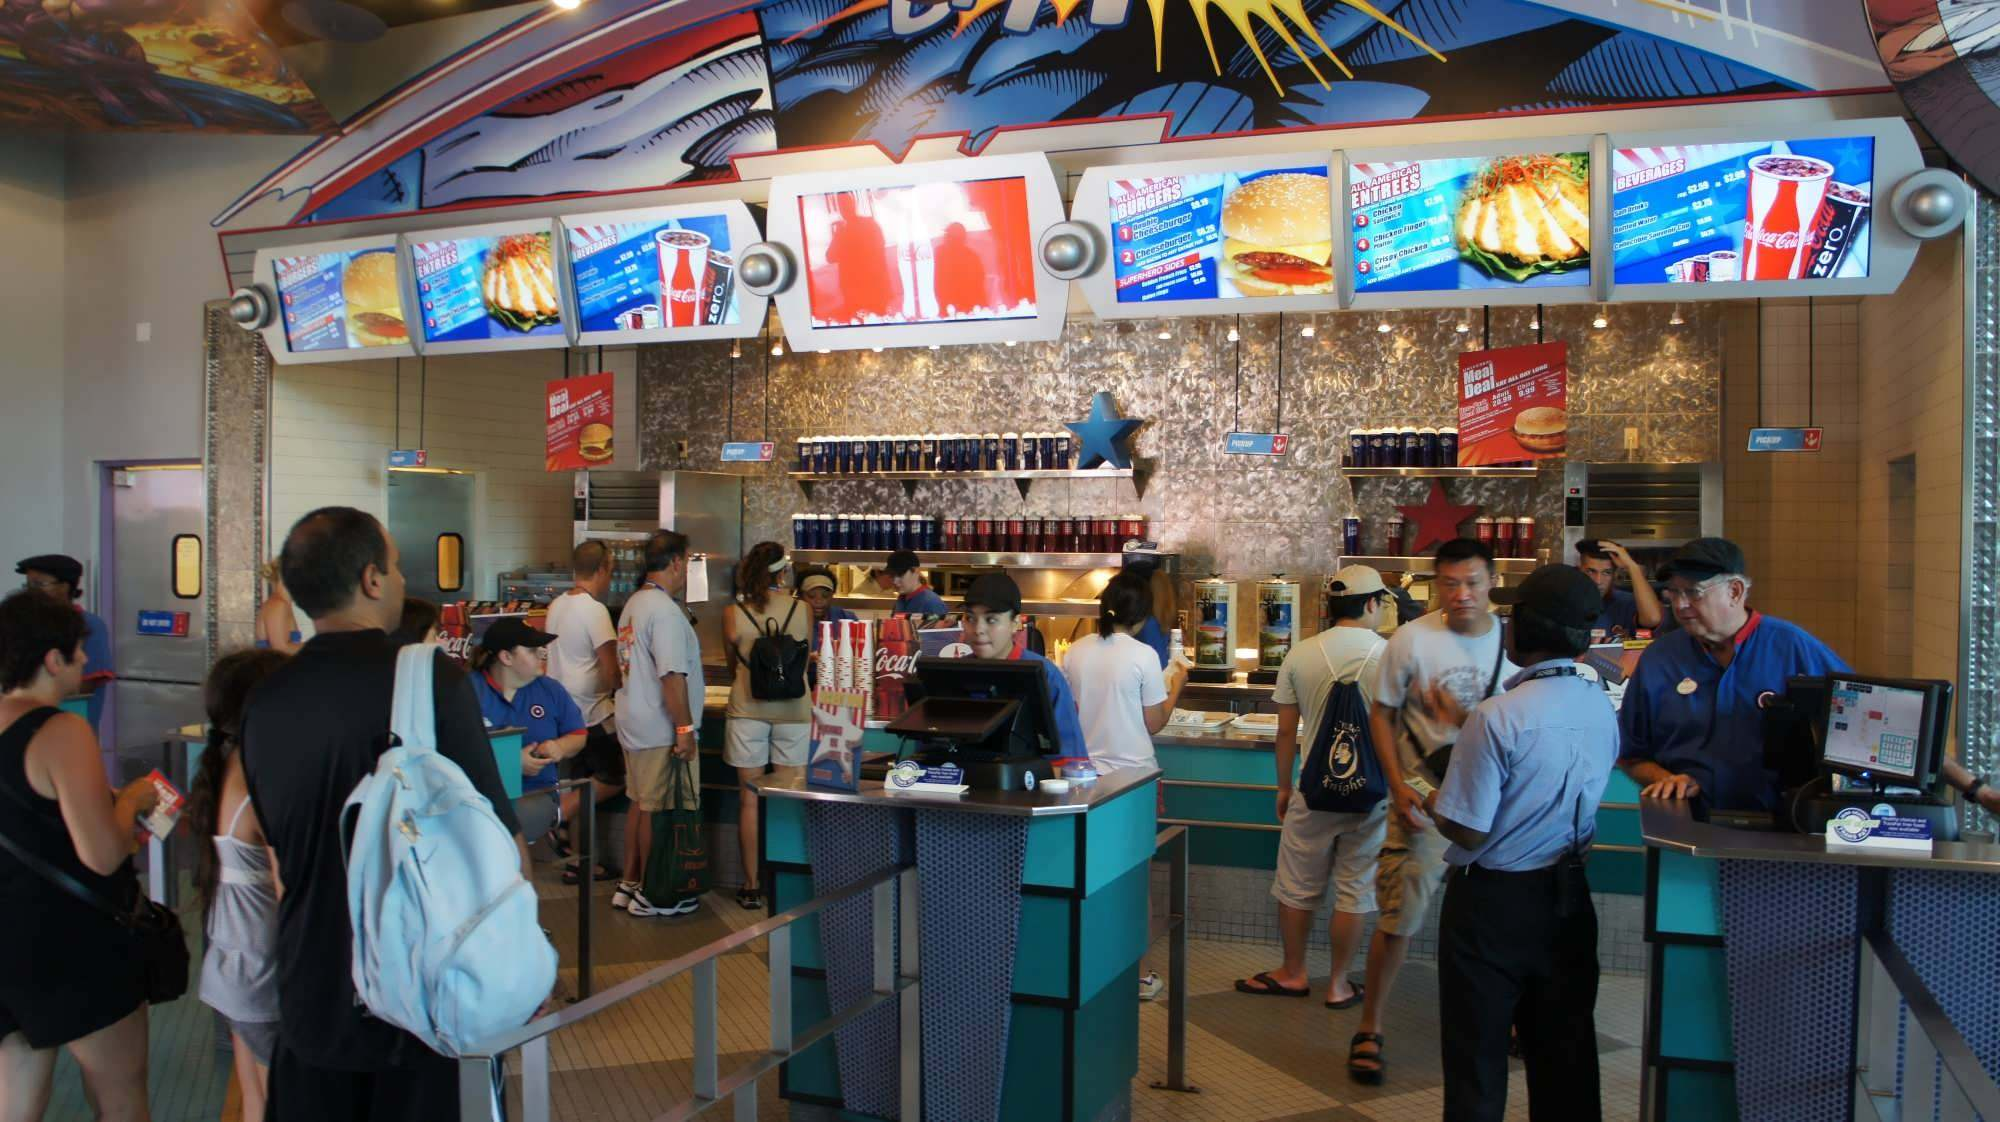 Cosmic Ray's Starlight Cafe in Tomorrowland: Sonny Eclipse is in the house! (with HD 1080p video)